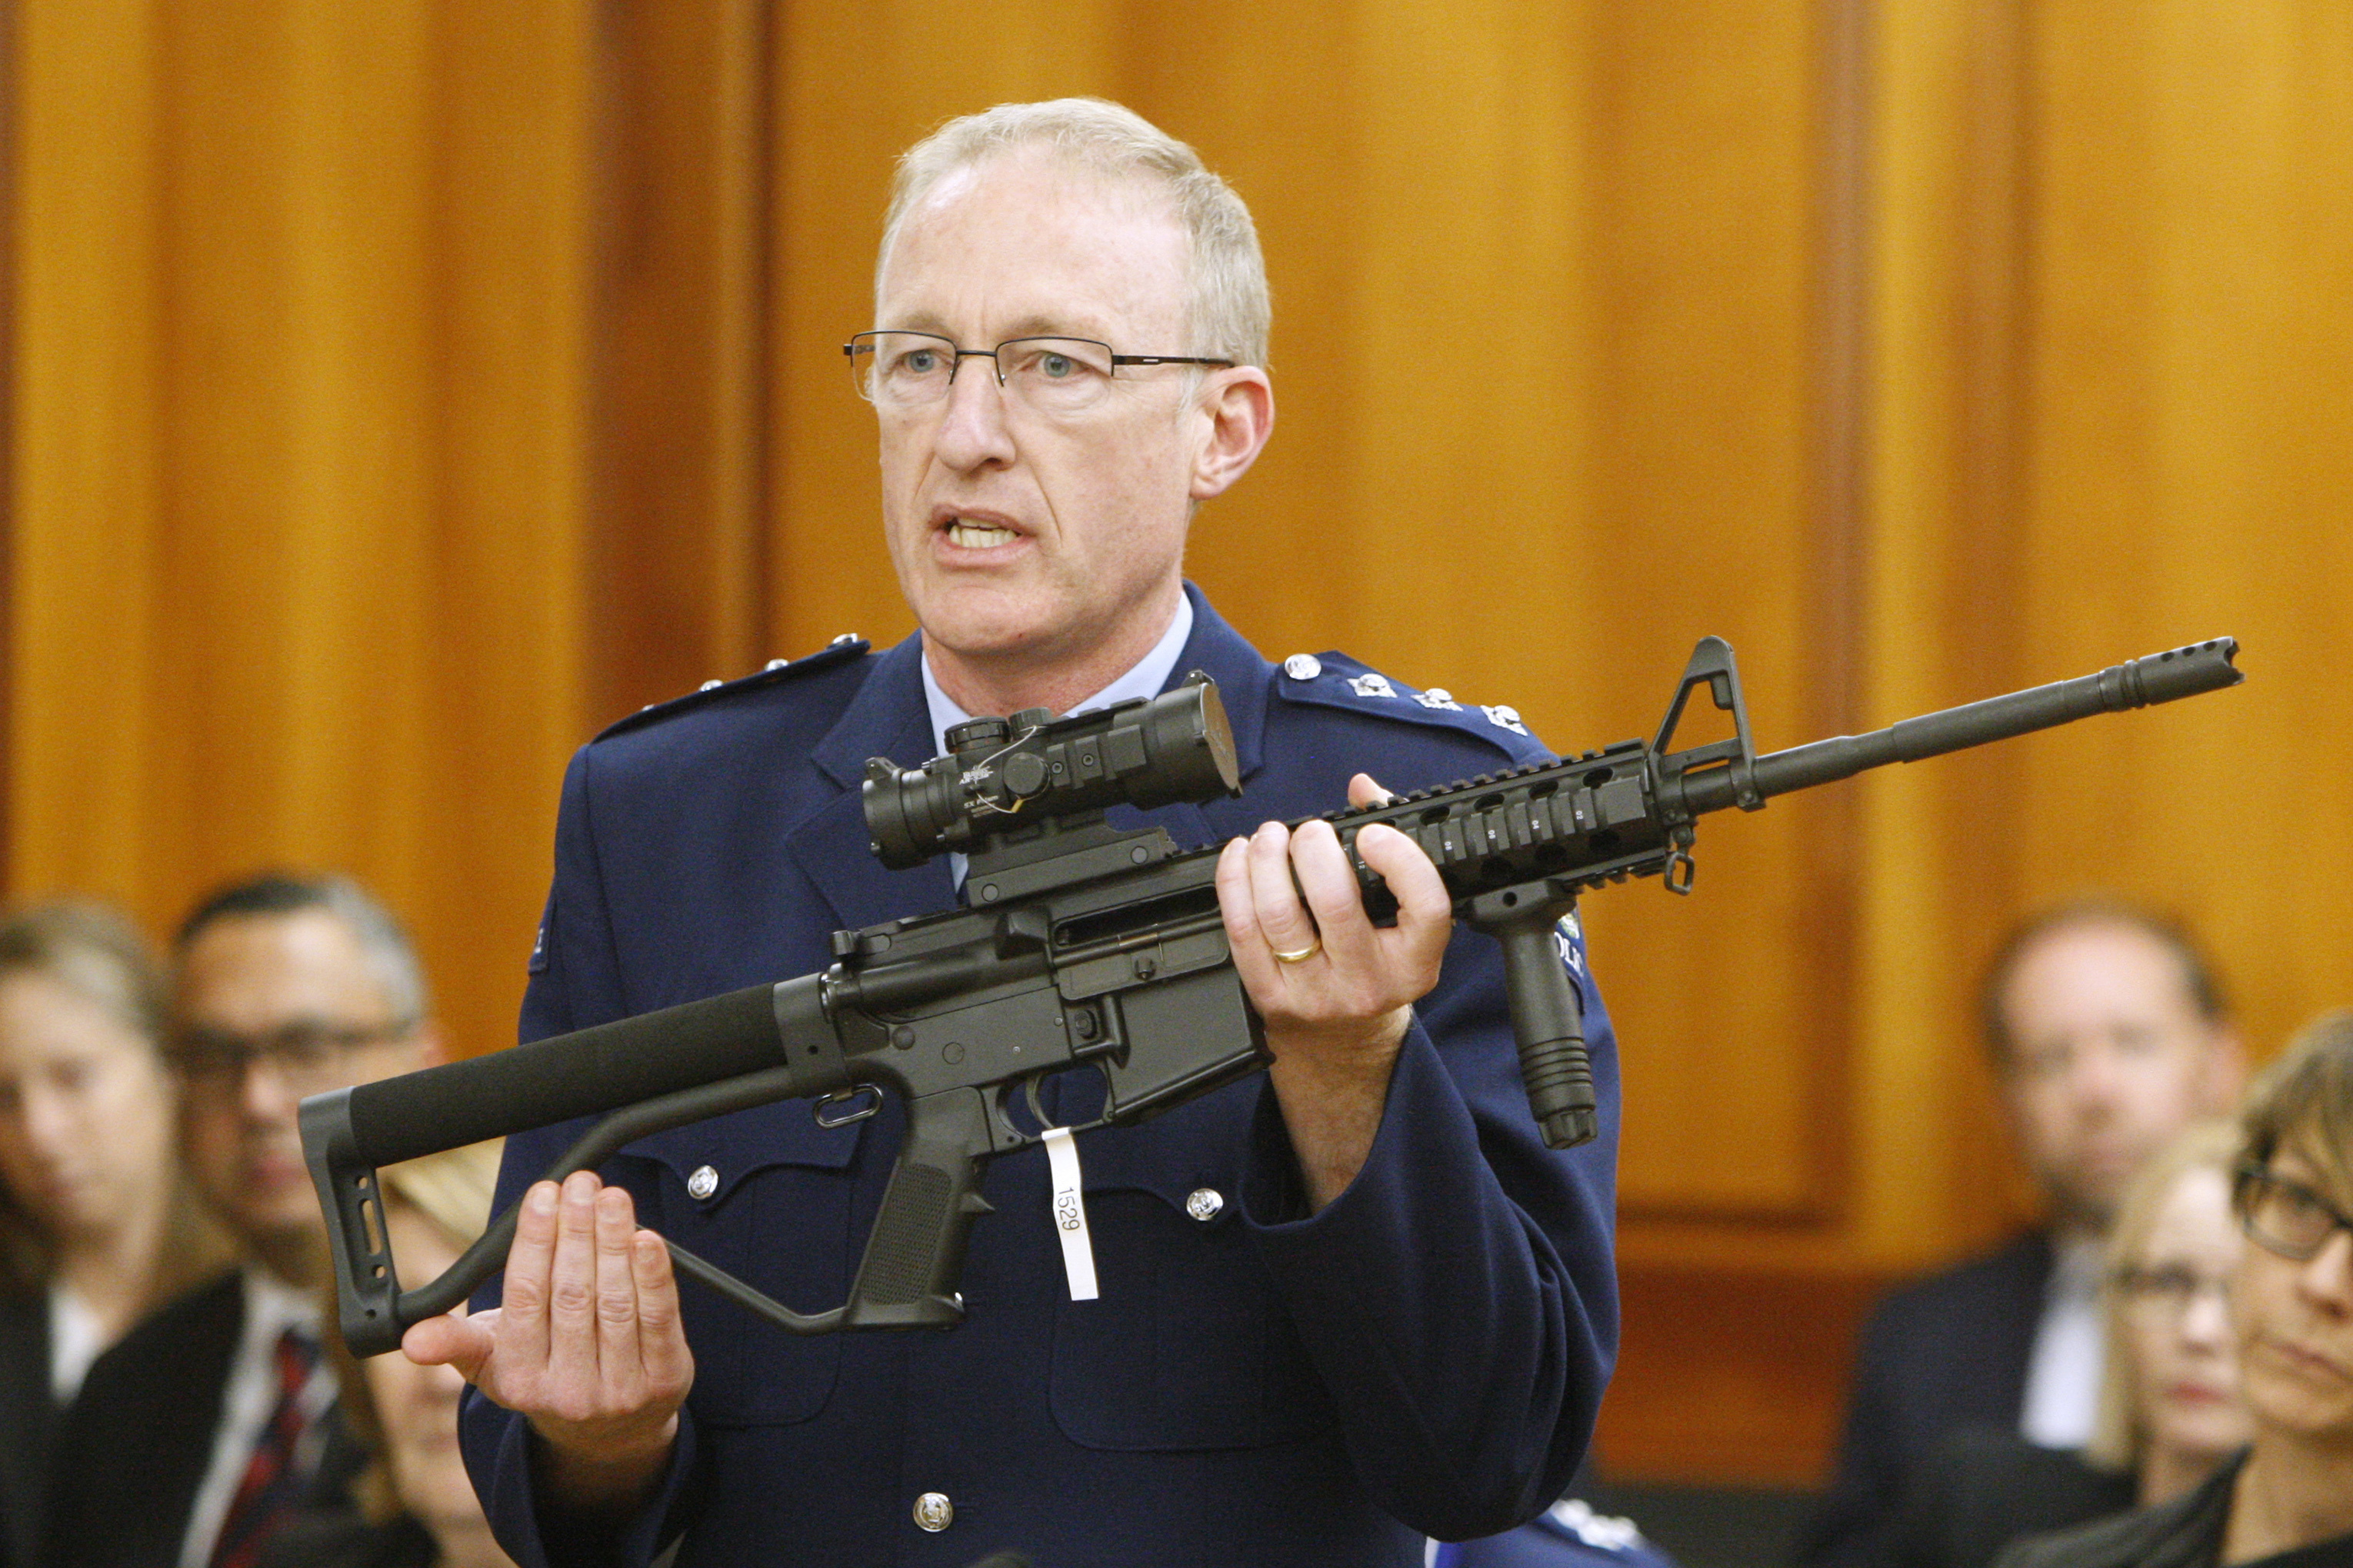 Police acting superintendent Mike McIlraith shows New Zealand lawmakers an AR-15 style rifle similar to one of the weapons a gunman used to slaughter 51 worshippers at two Christchurch mosques, in Wellington, New Zealand, on April 2, 2019.